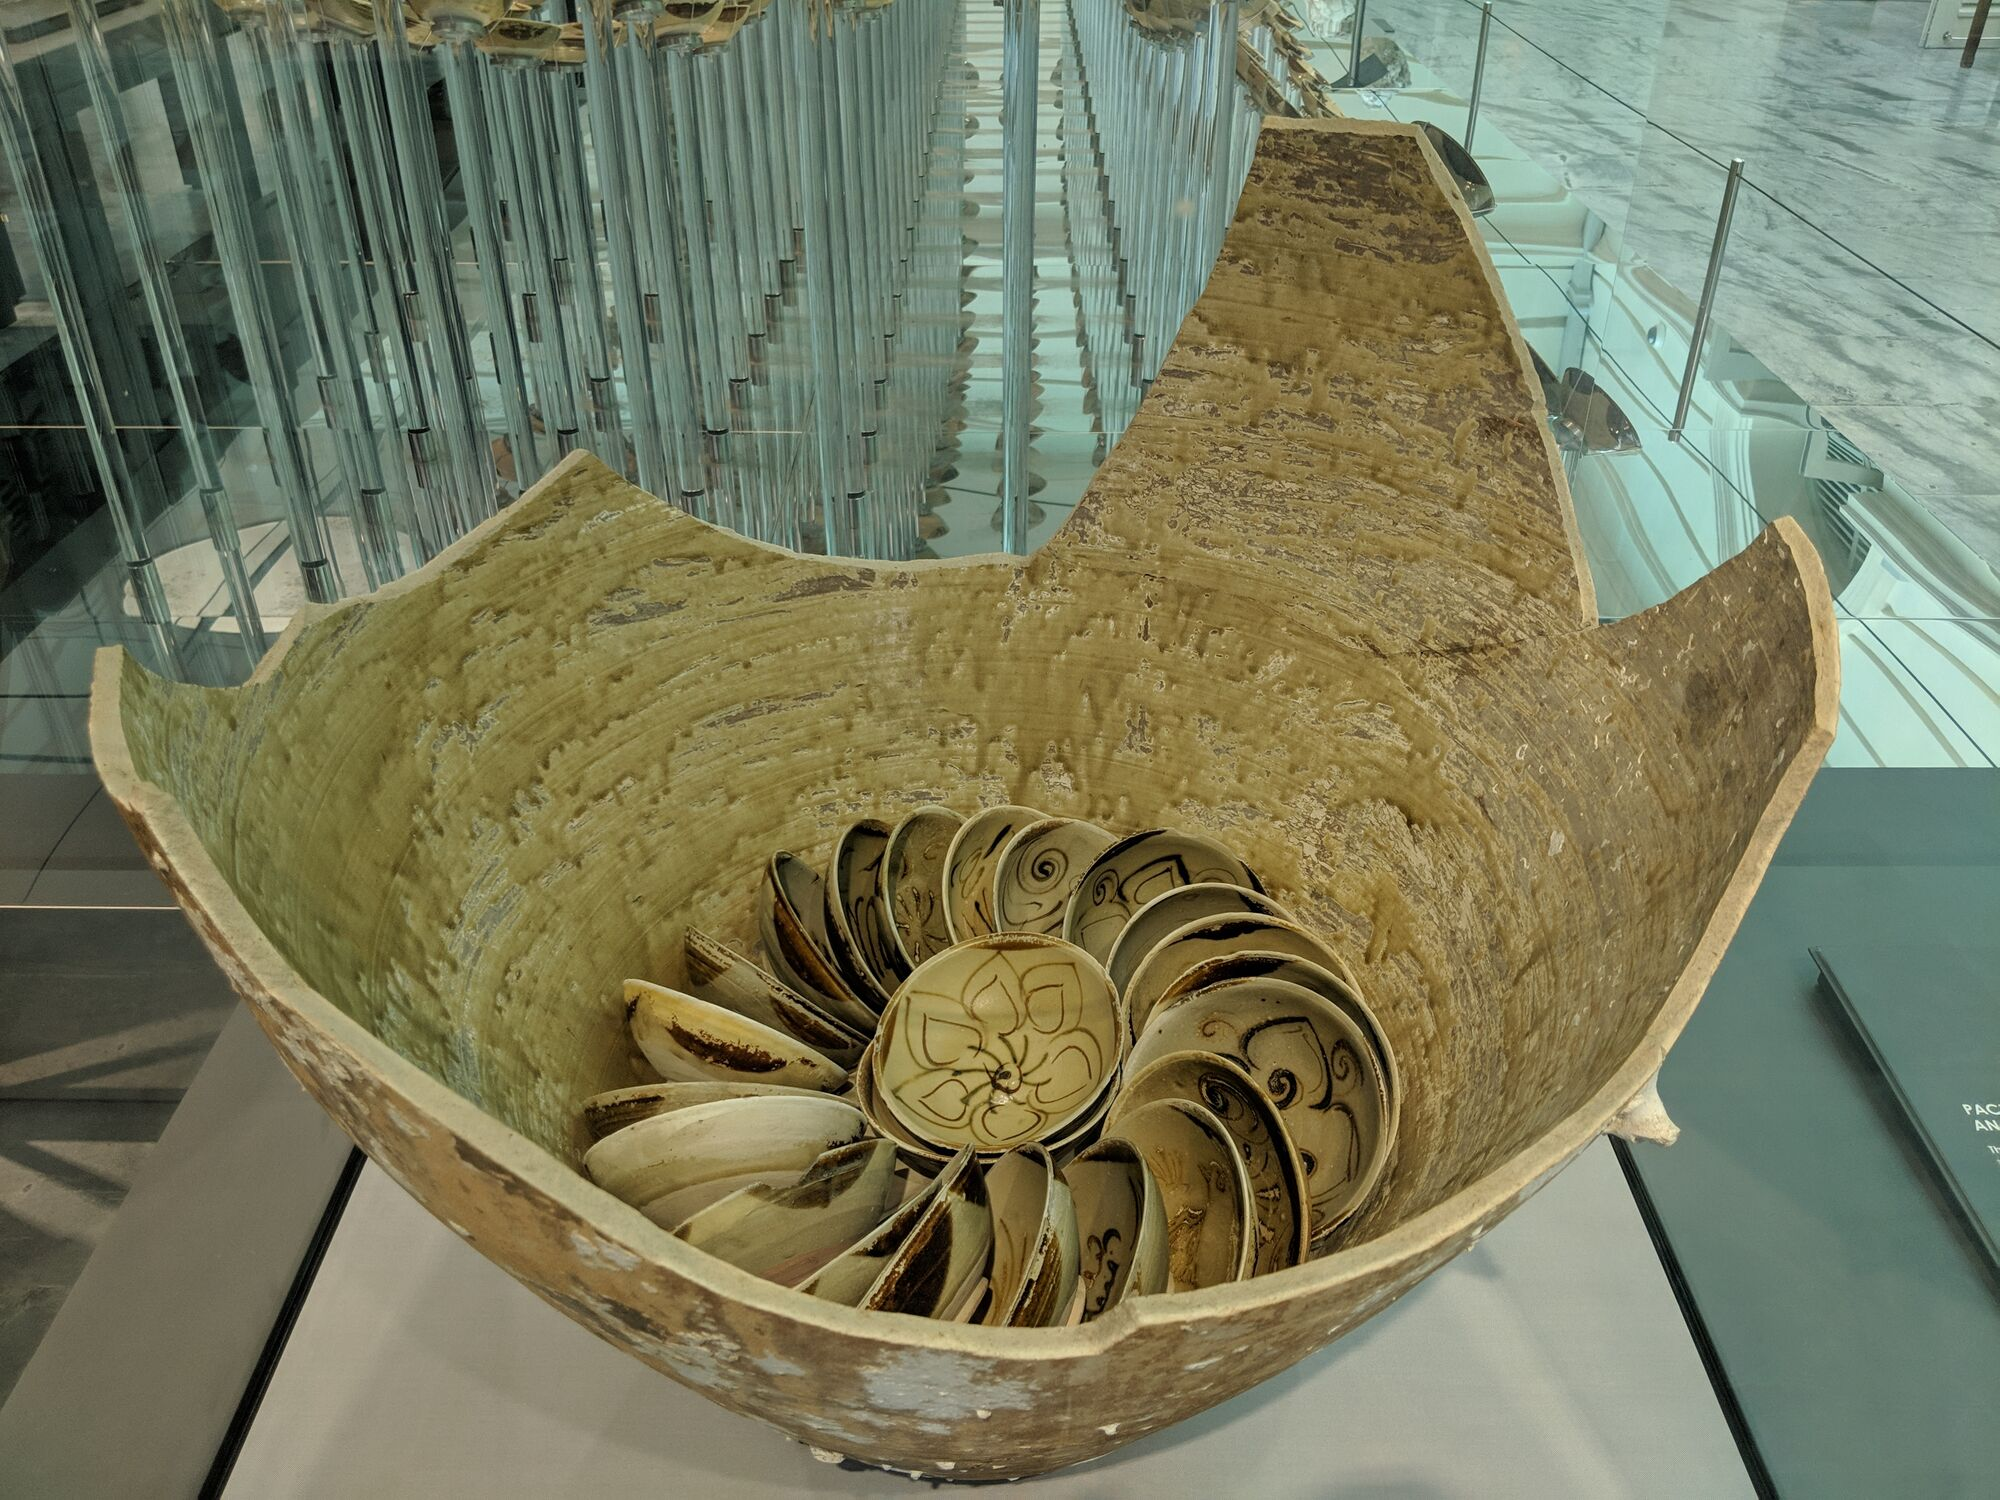 Thousands of ceramic bowls were tightly coiled inside storage jars. About 130 bowls were packed in each jar, cushioned by straw.